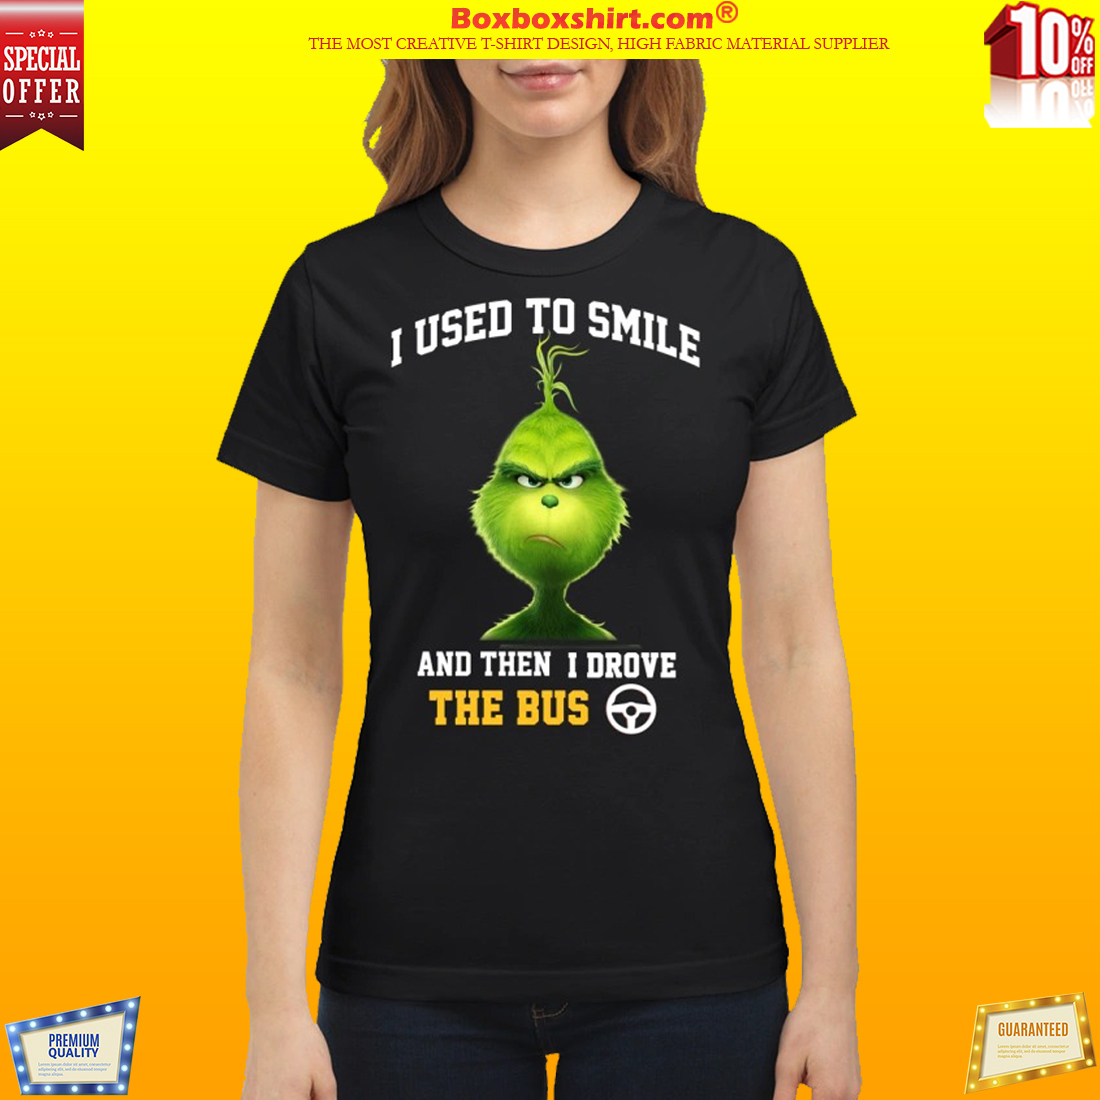 Grinch I used to smile and then drove the bus classic shirt